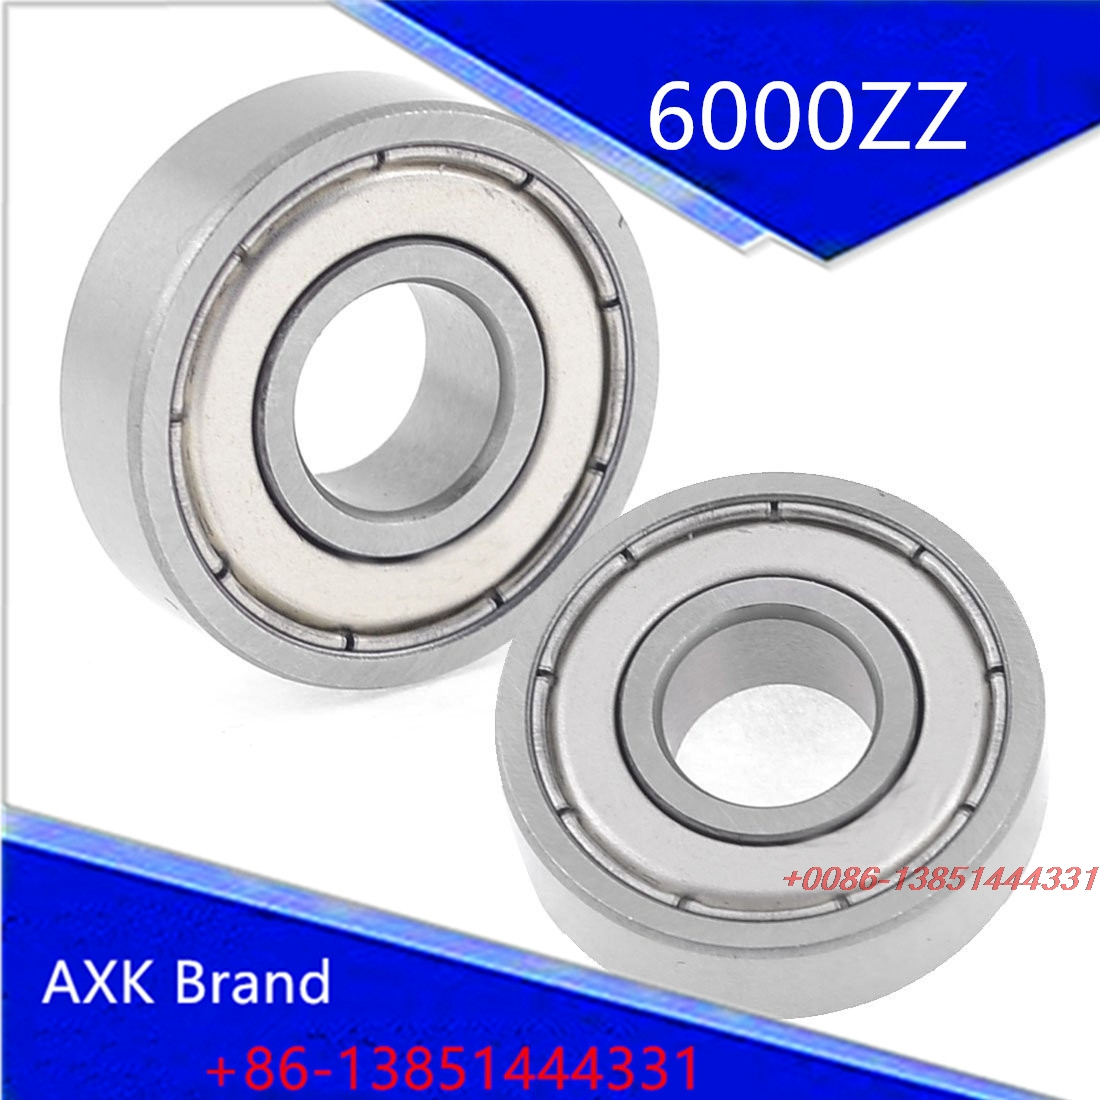 AXK  6000ZZ Dual Shielded Sealed Deep Groove Ball Bearings 10x26x 8mm gcr15 6036 180x280x46mm high precision deep groove ball bearings abec 1 p0 1 pcs